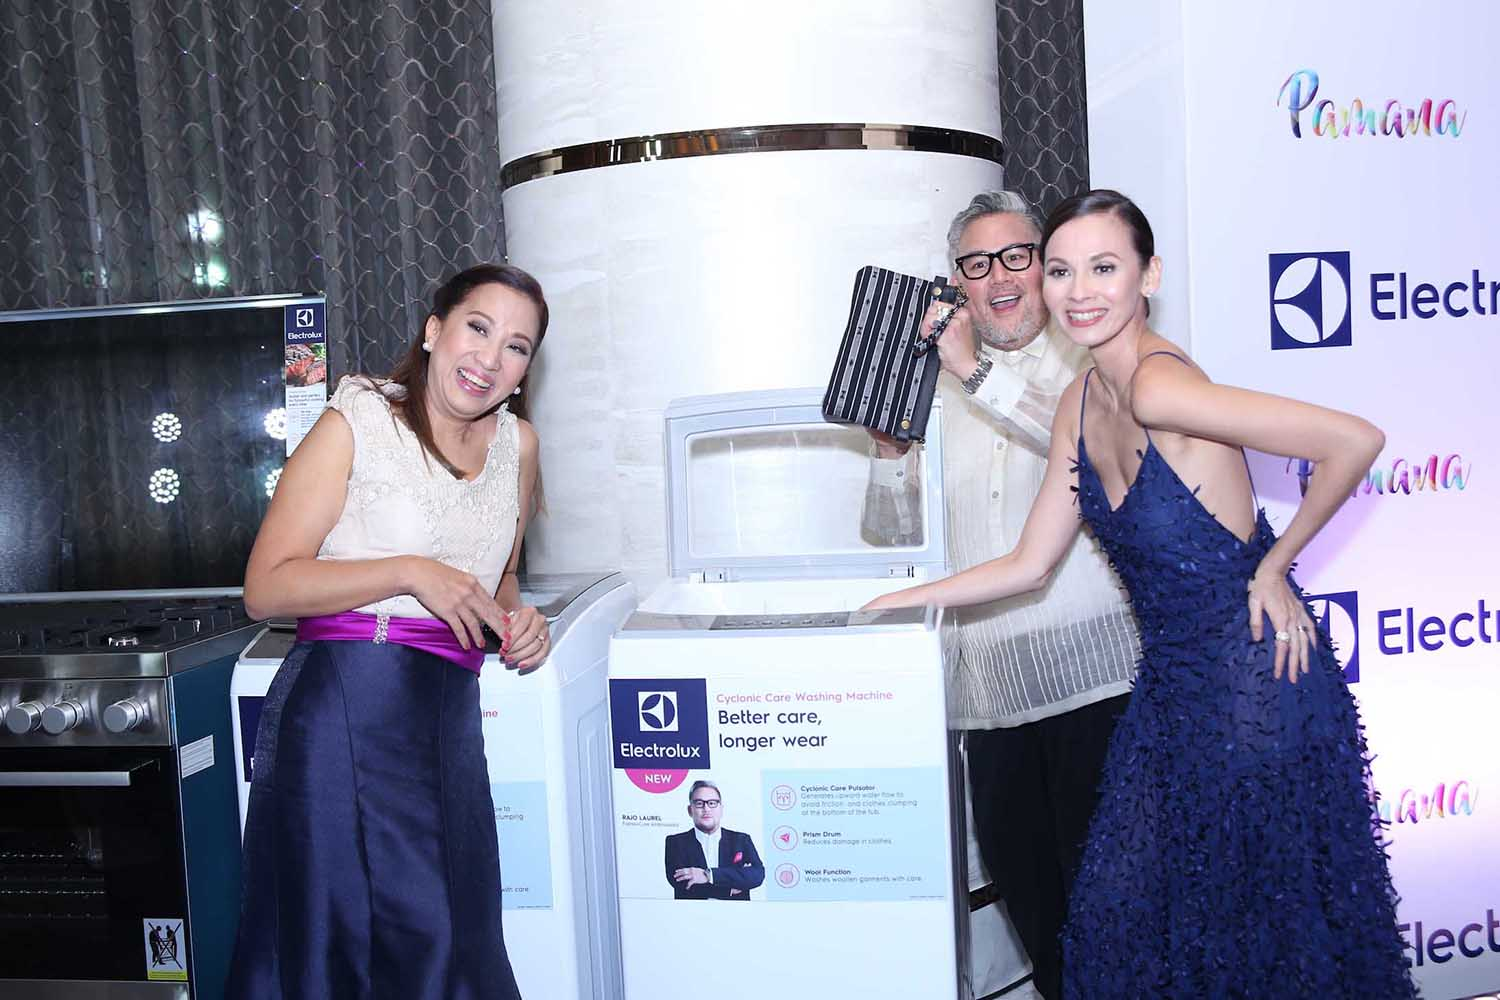 Electrolux Launches FashionCare Campaign at 15th Anniversary Celebration